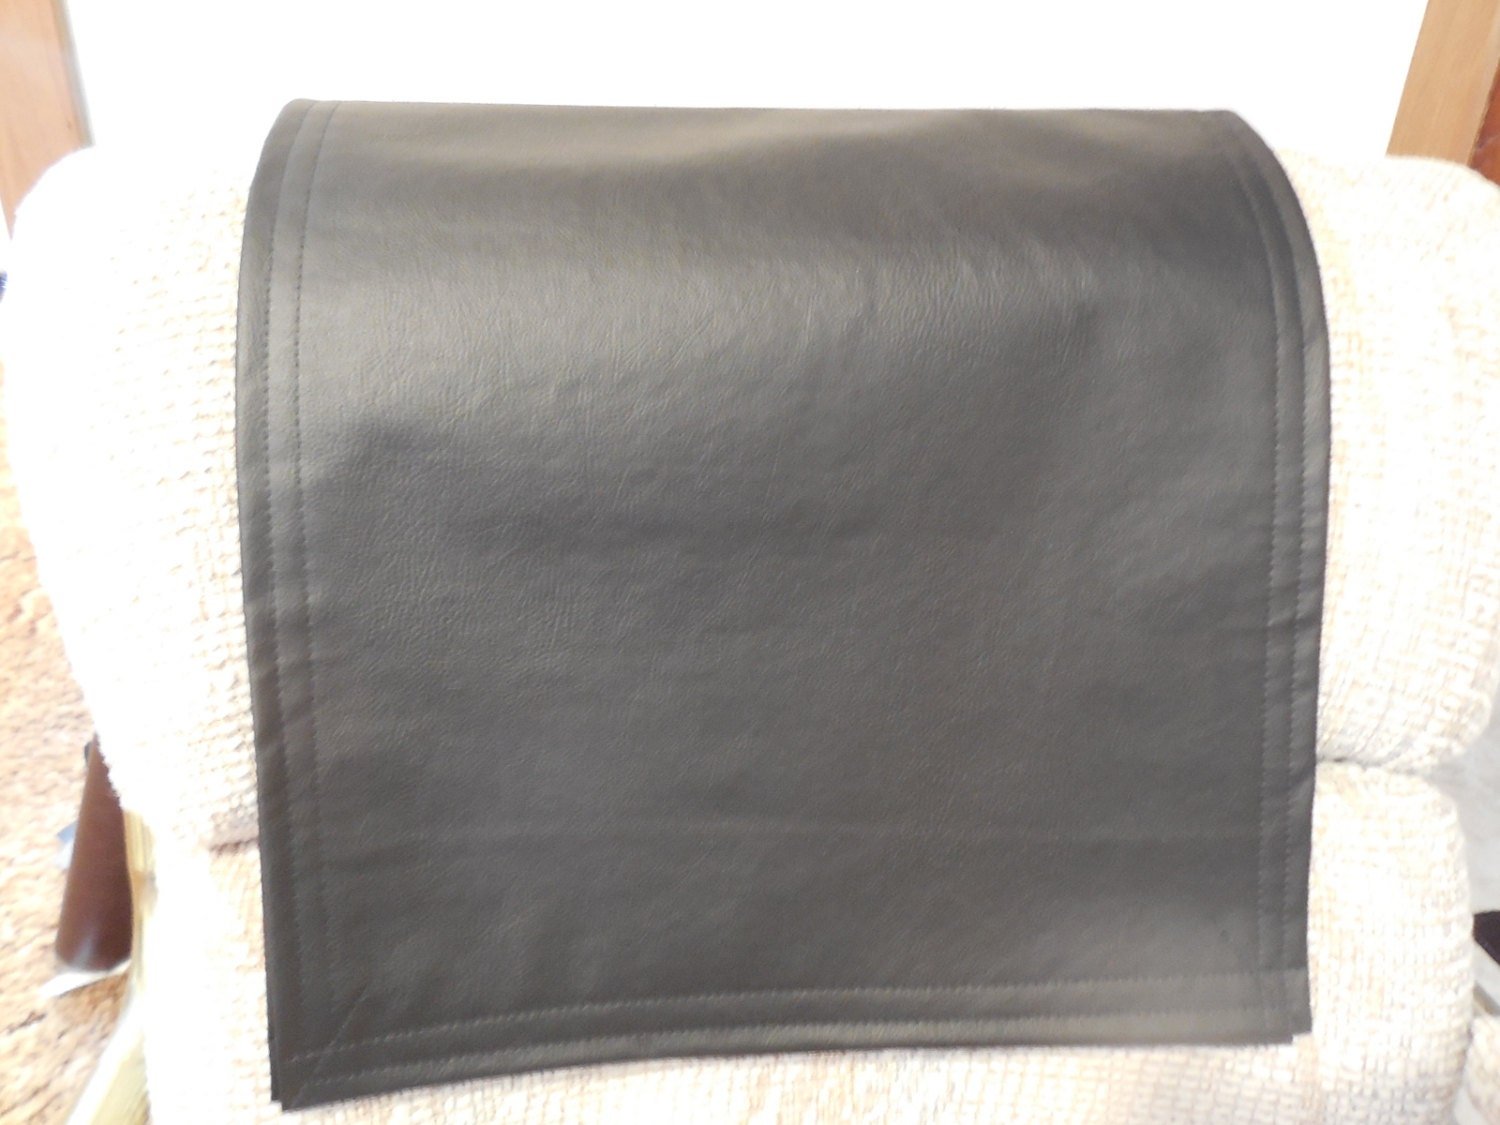 Furniture Protector Chair Cap Headrest Pad Recliner Head : ilfullxfull8822726232iqn from www.etsy.com size 1500 x 1125 jpeg 257kB